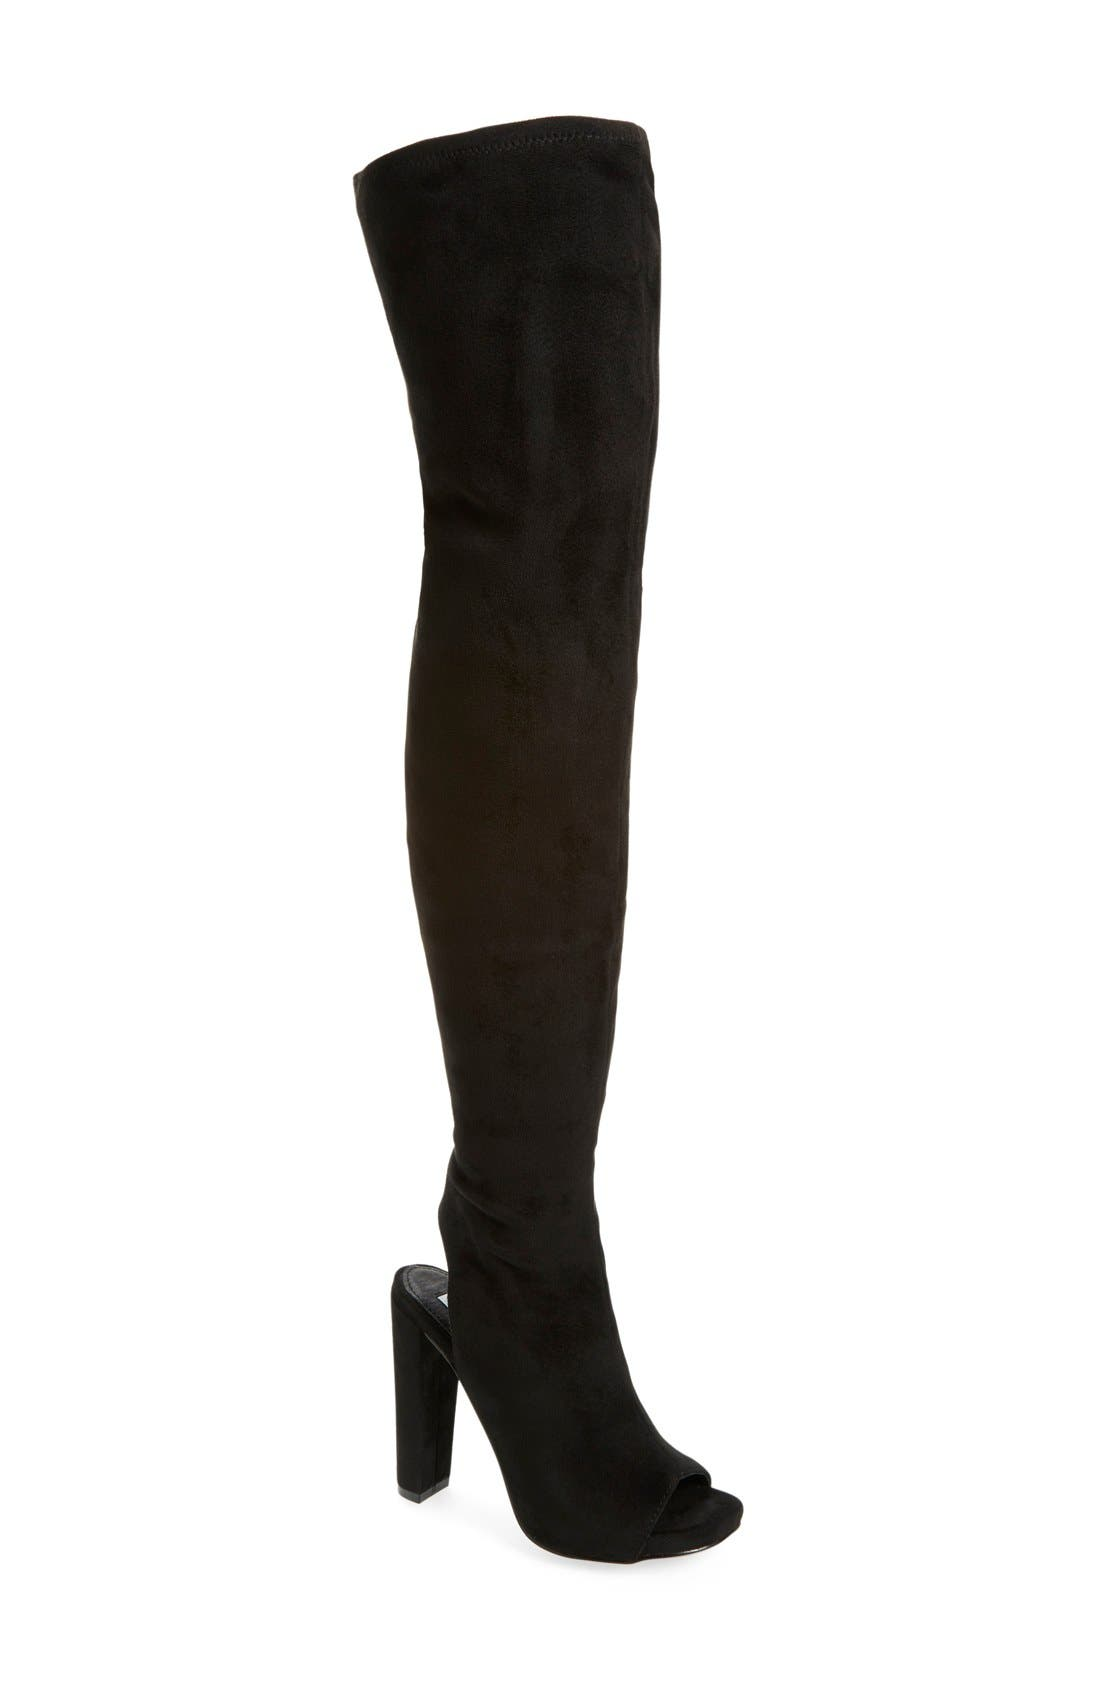 'Yimme' Over the Knee Boot,                             Main thumbnail 1, color,                             007